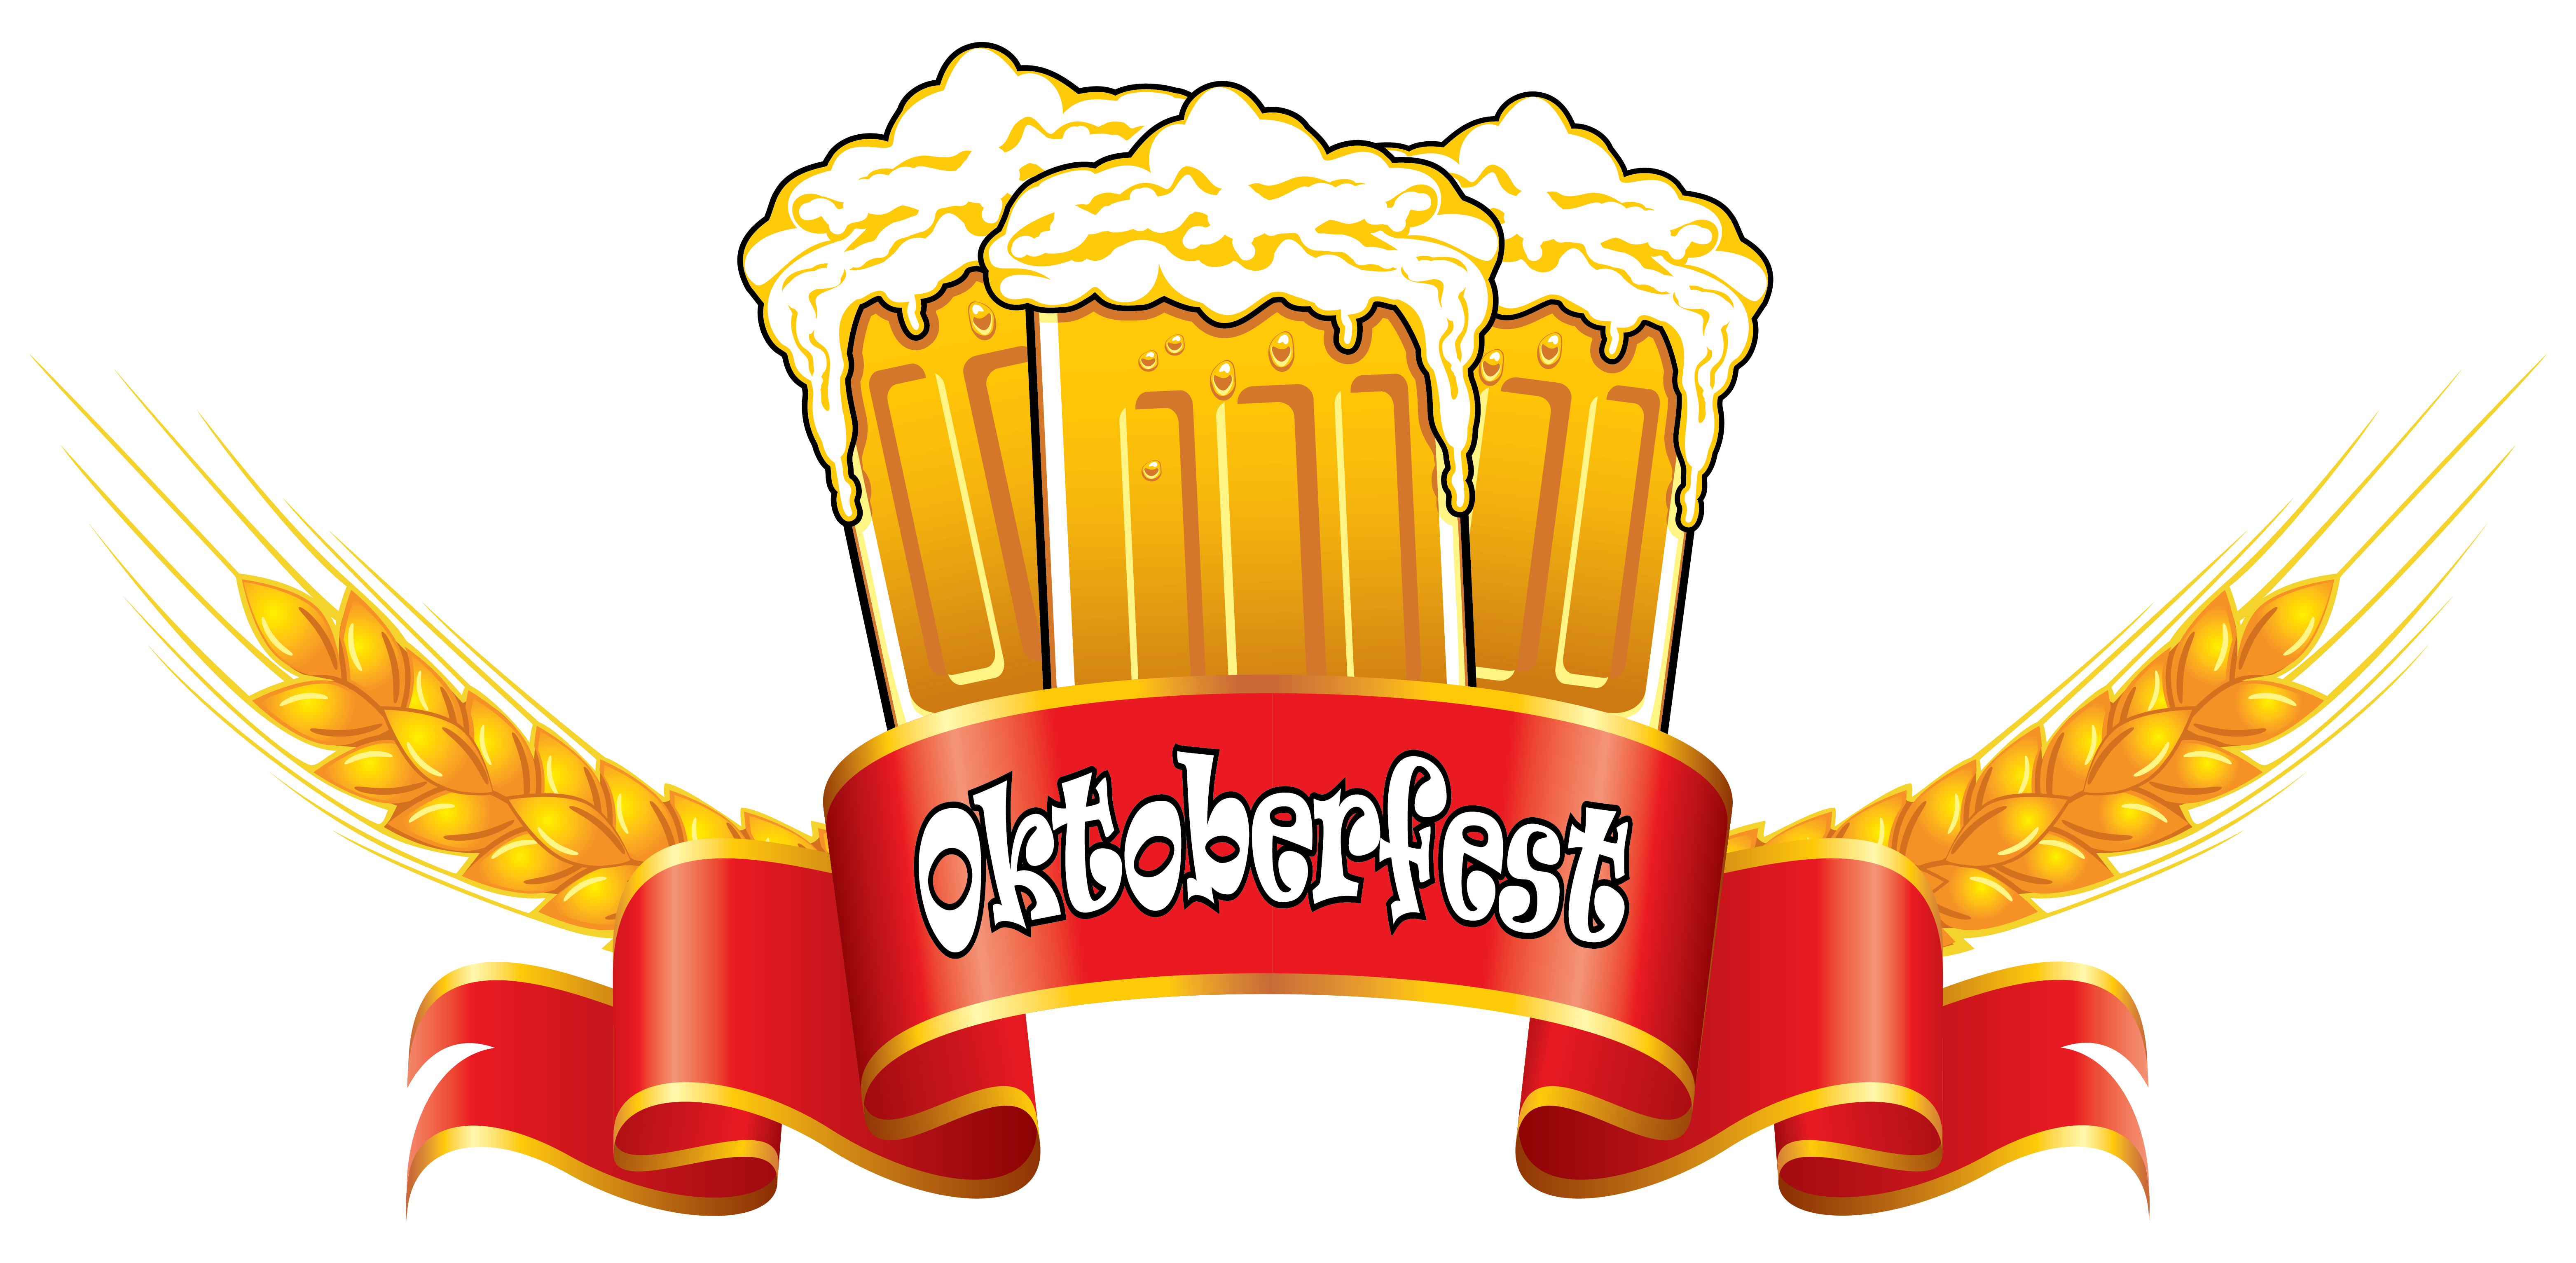 Oktoberfest clipart october, Oktoberfest october Transparent.